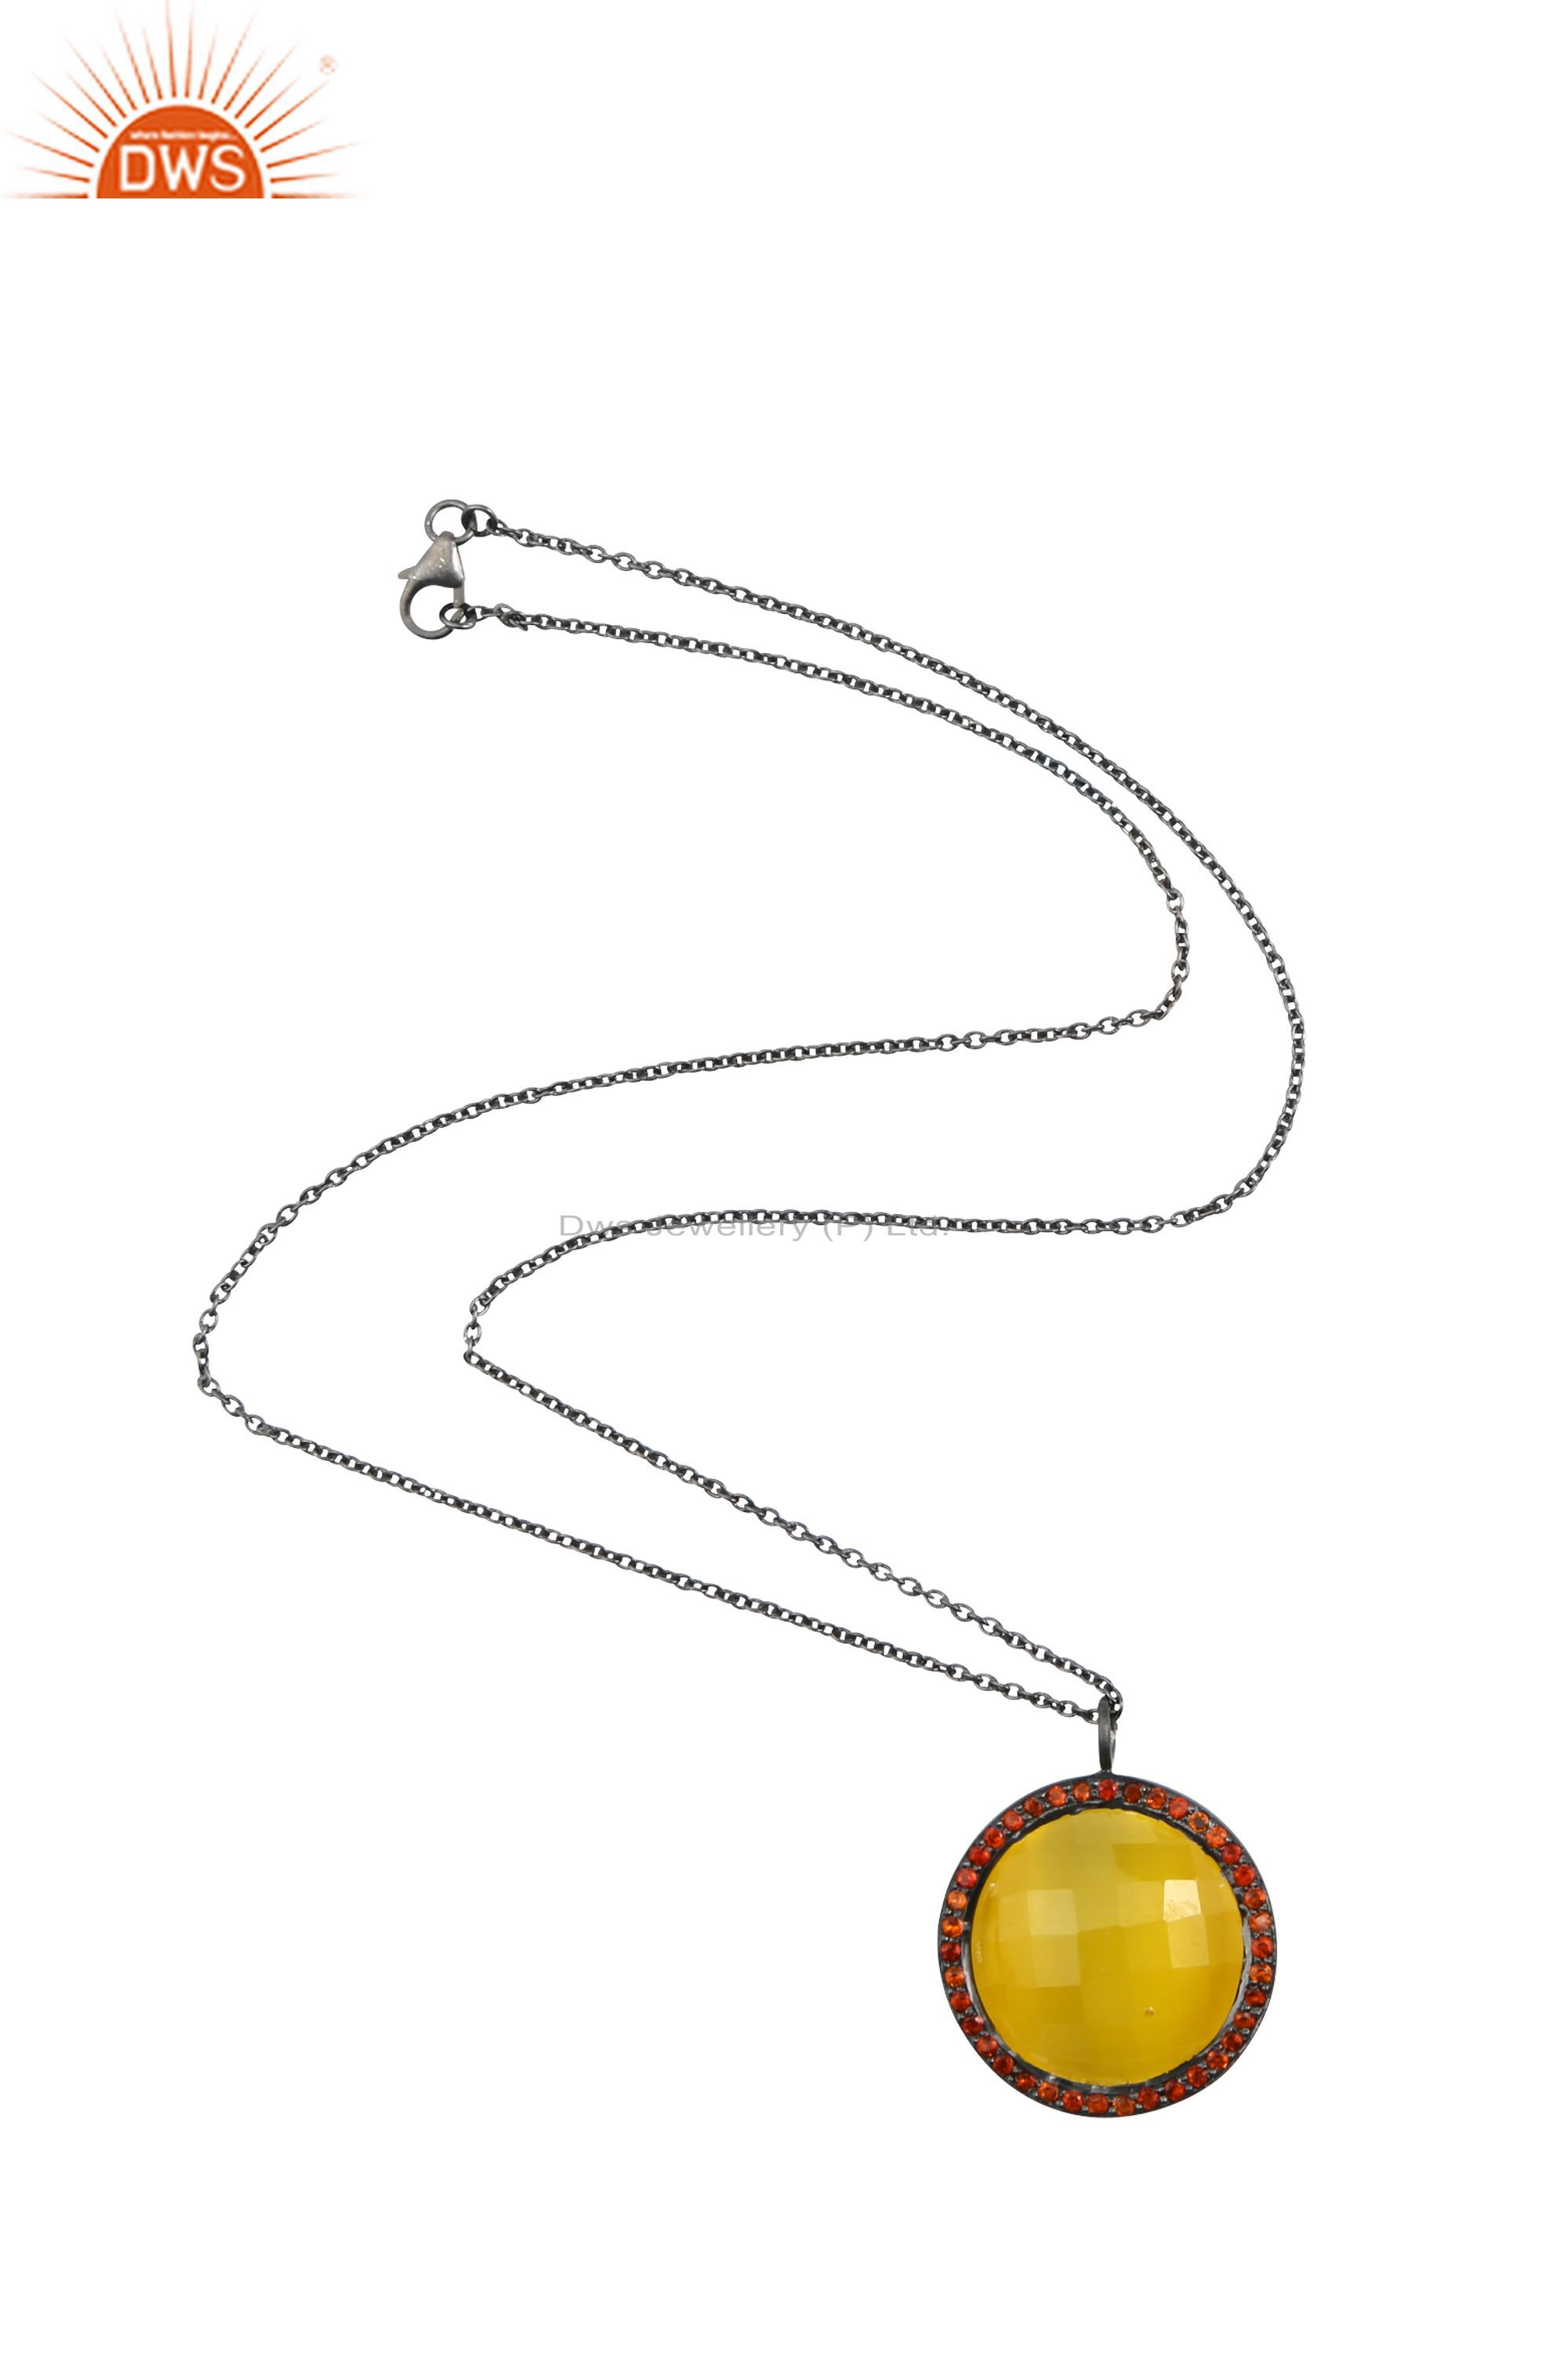 Oxidized 925 Sterling Silver Yellow Moonstone And Citrine Halo Pendant Necklace